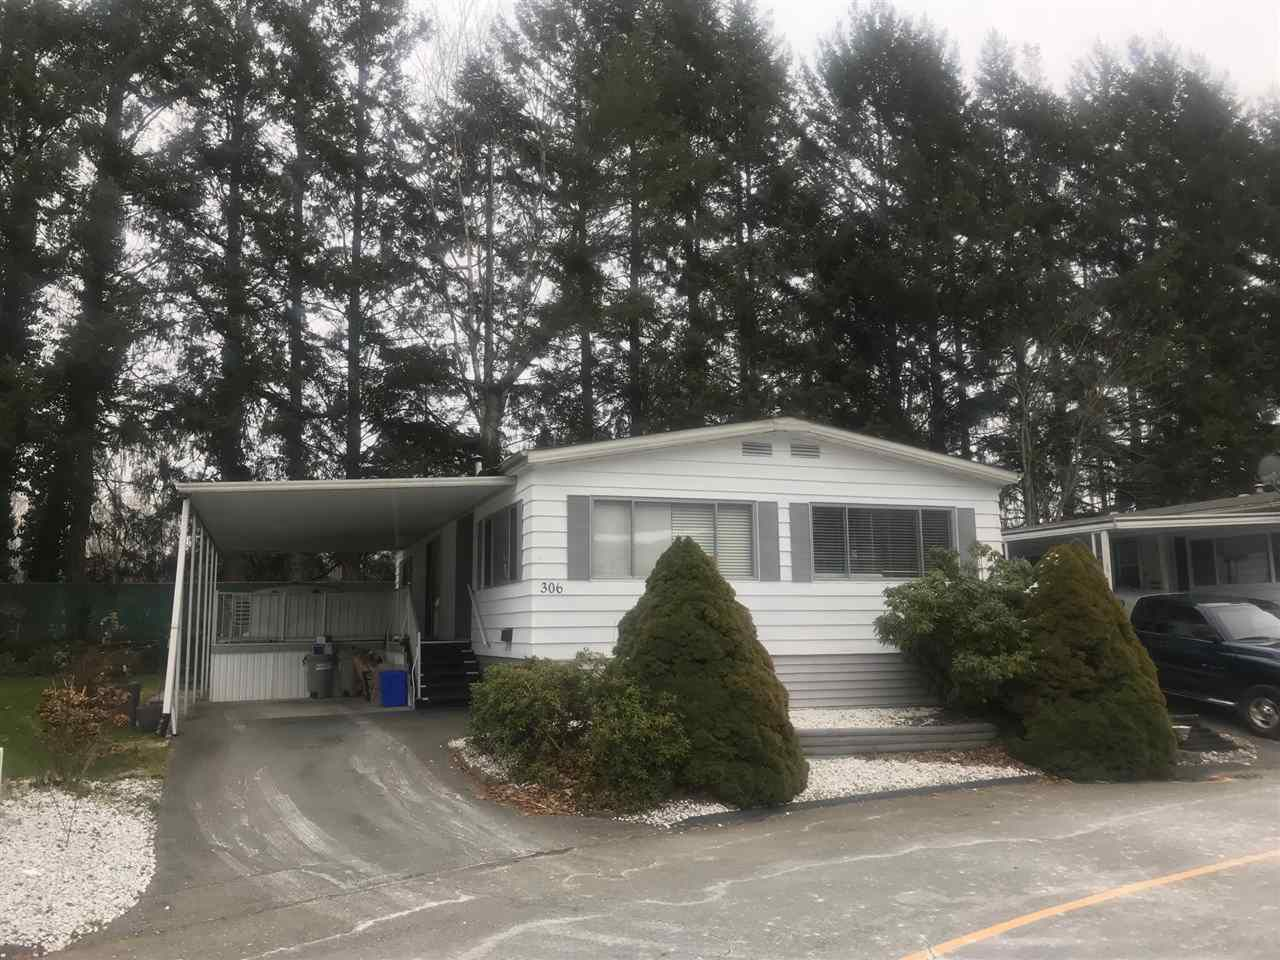 Main Photo: 306 1840 160 Street in Surrey: King George Corridor Manufactured Home for sale (South Surrey White Rock)  : MLS®# R2241802